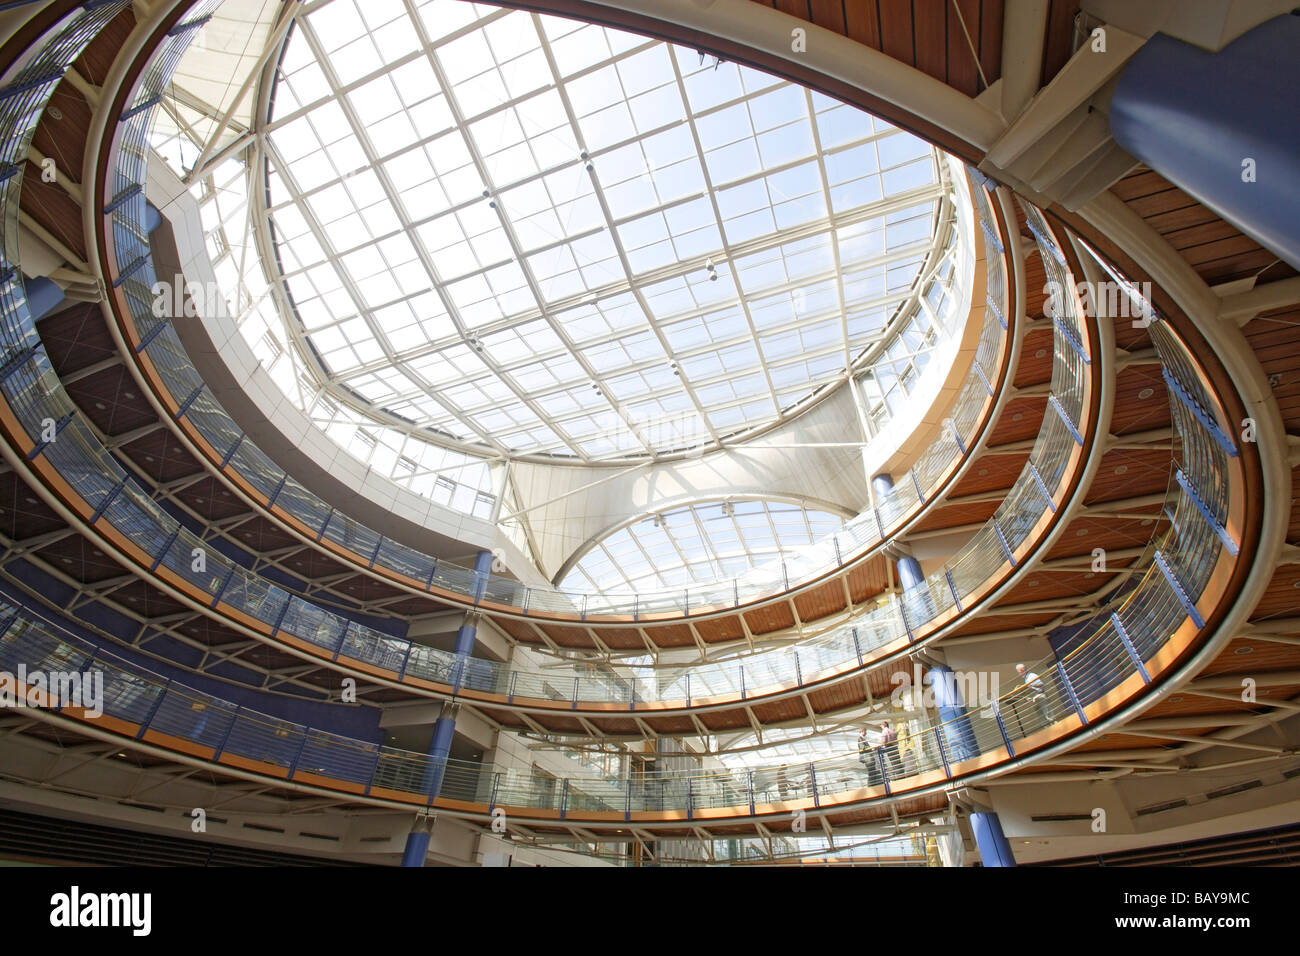 Atrium of the Auchan Mall in Avenue J. F. Kennedy in the district Kirchberg, Luxembourg - Stock Image